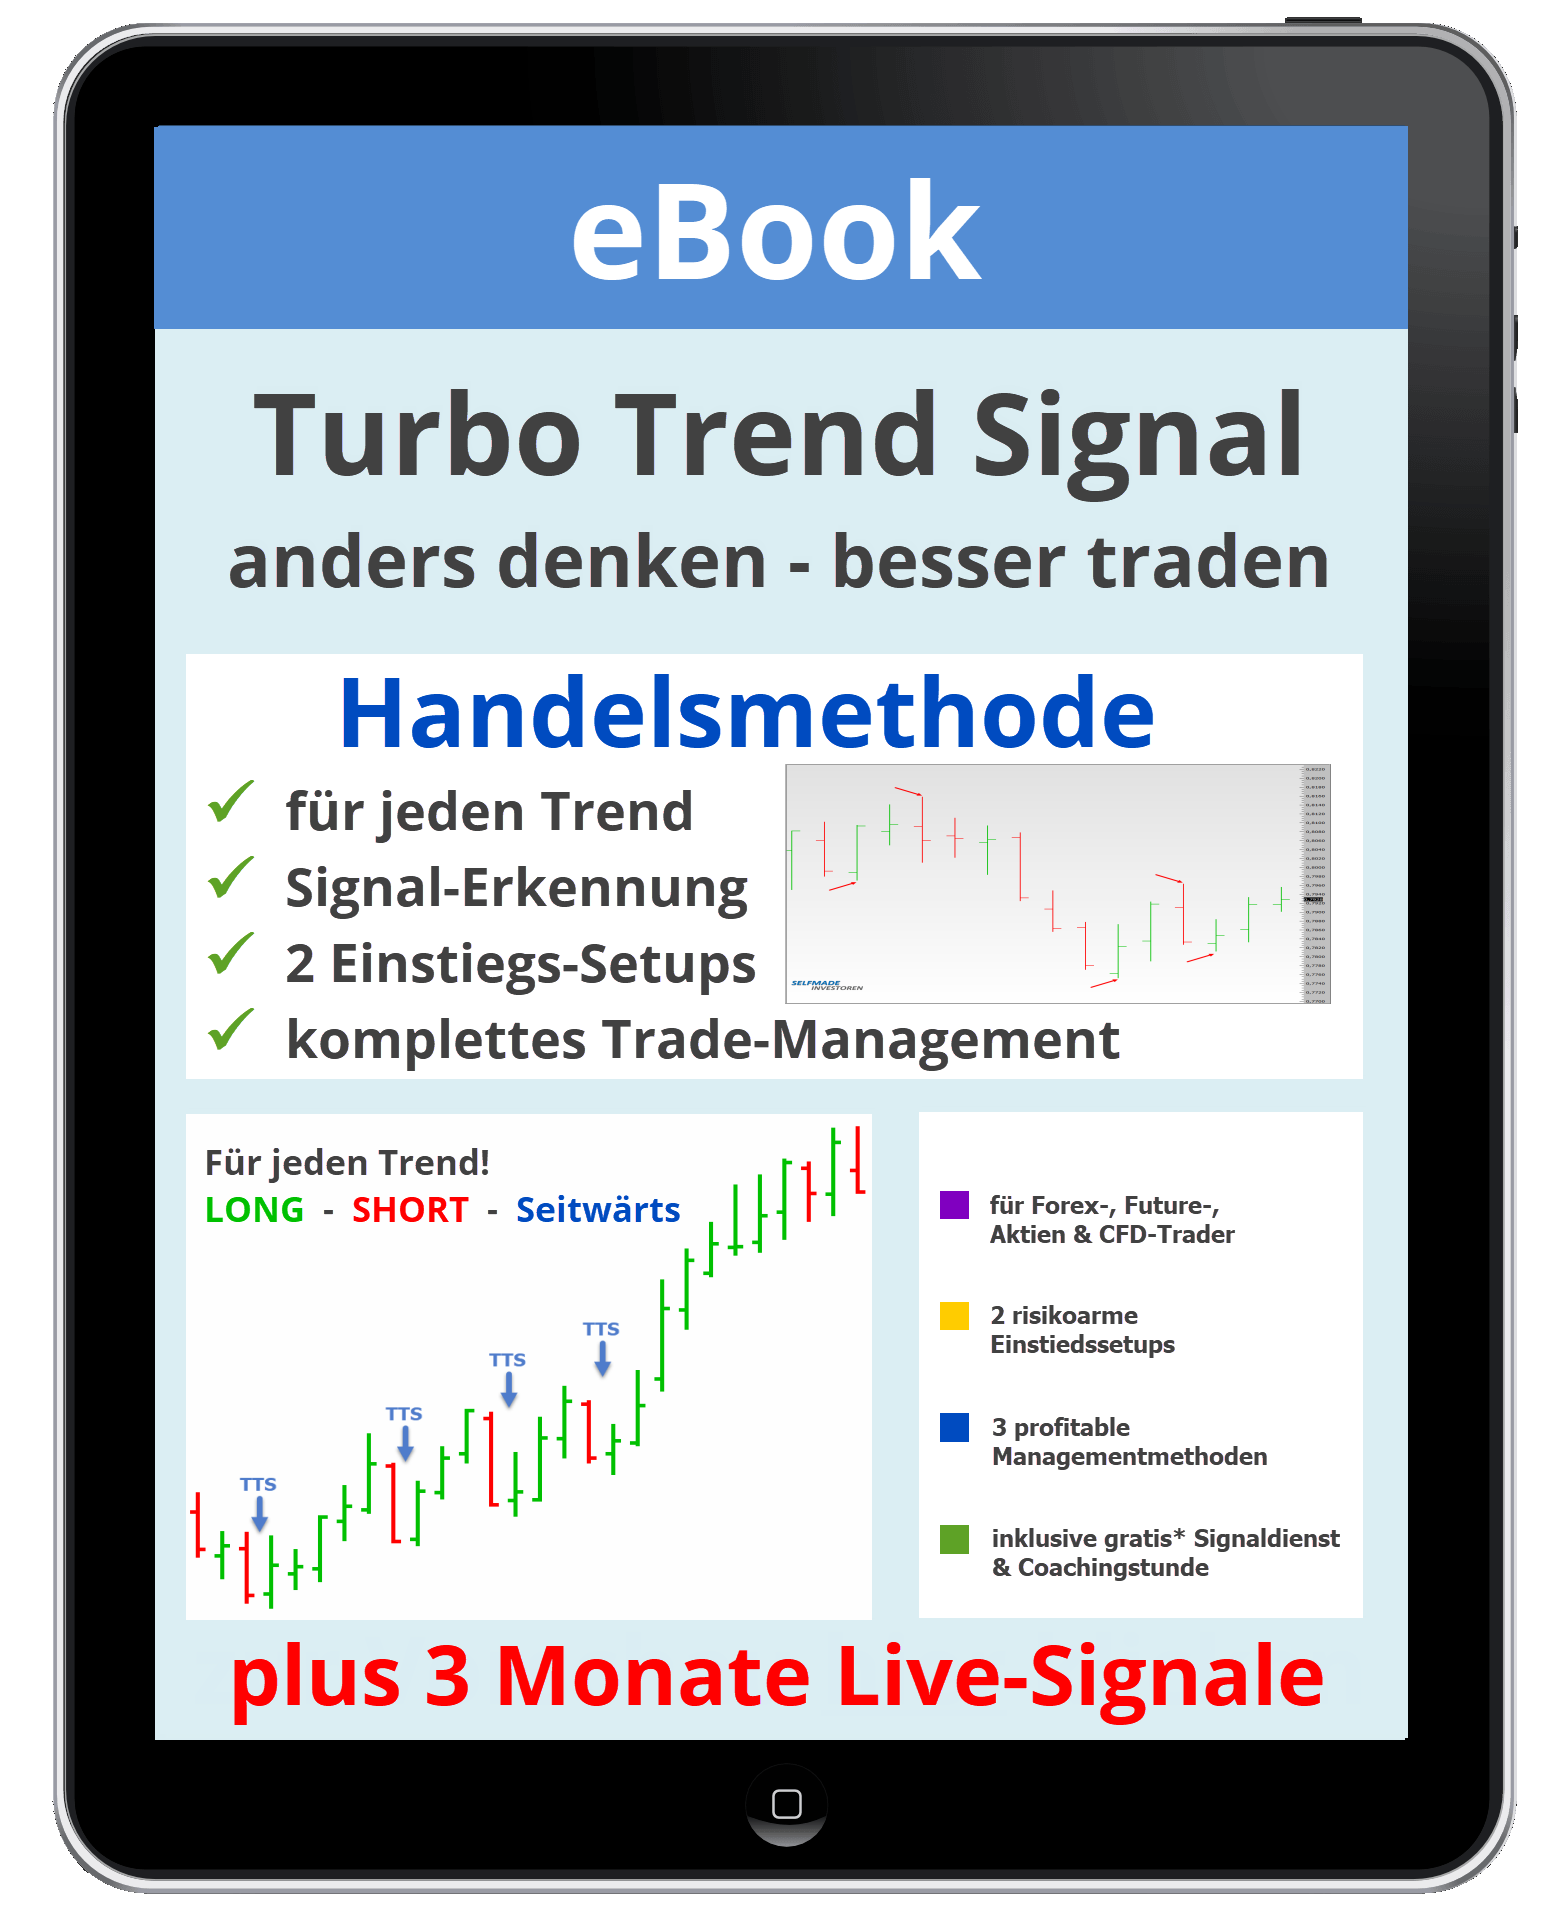 Turbo Trend Signal Handelsmethode